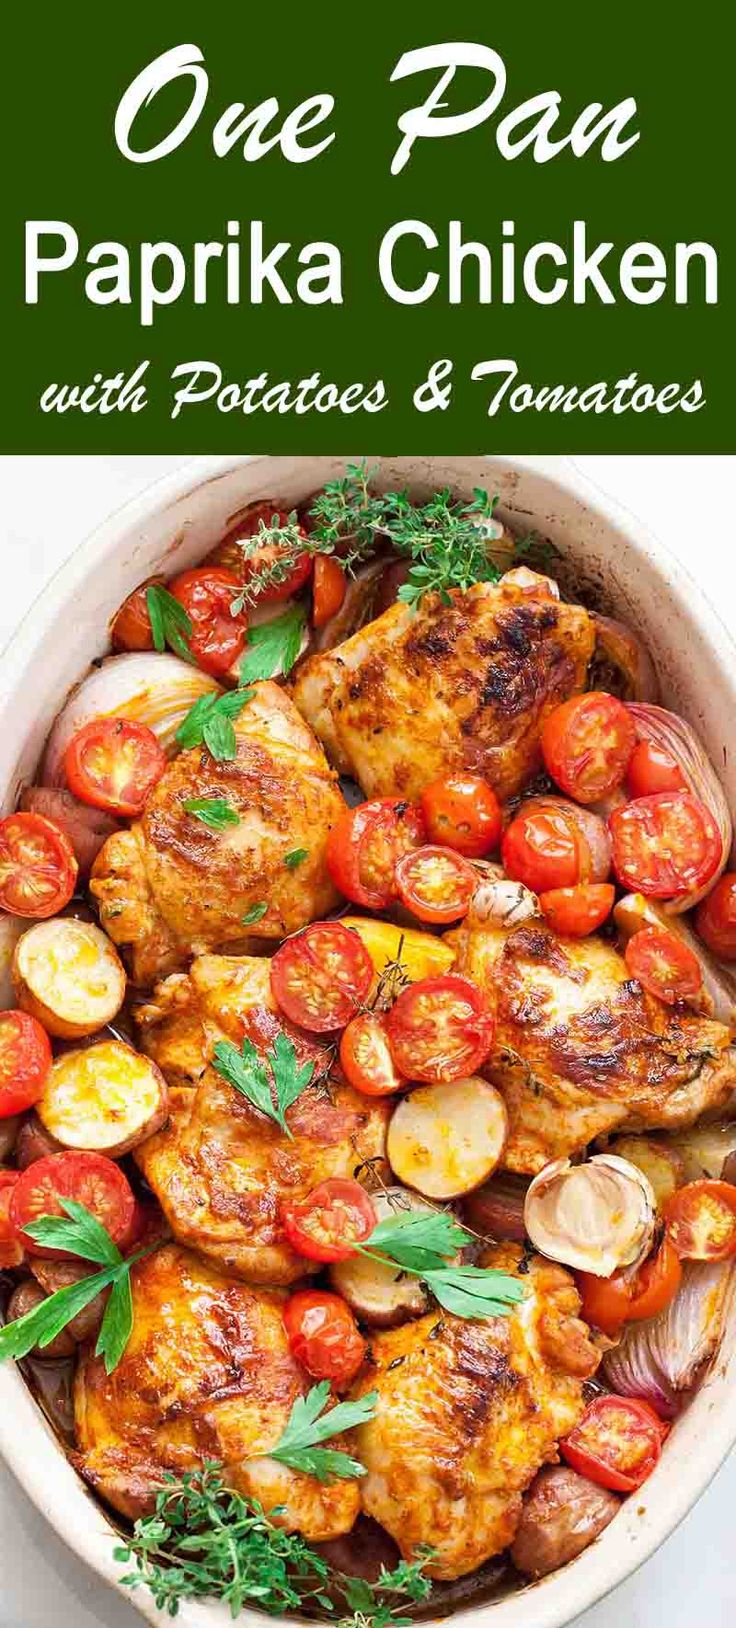 One-pan chicken dinner with potatoes, onions, garlic, cherry tomatoes, and an easy paprika sauce. Dairy-free, gluten-free. 1 hour start to finish! #EasyDinner #ChickenDinner #PaprikaChicken #1Pot